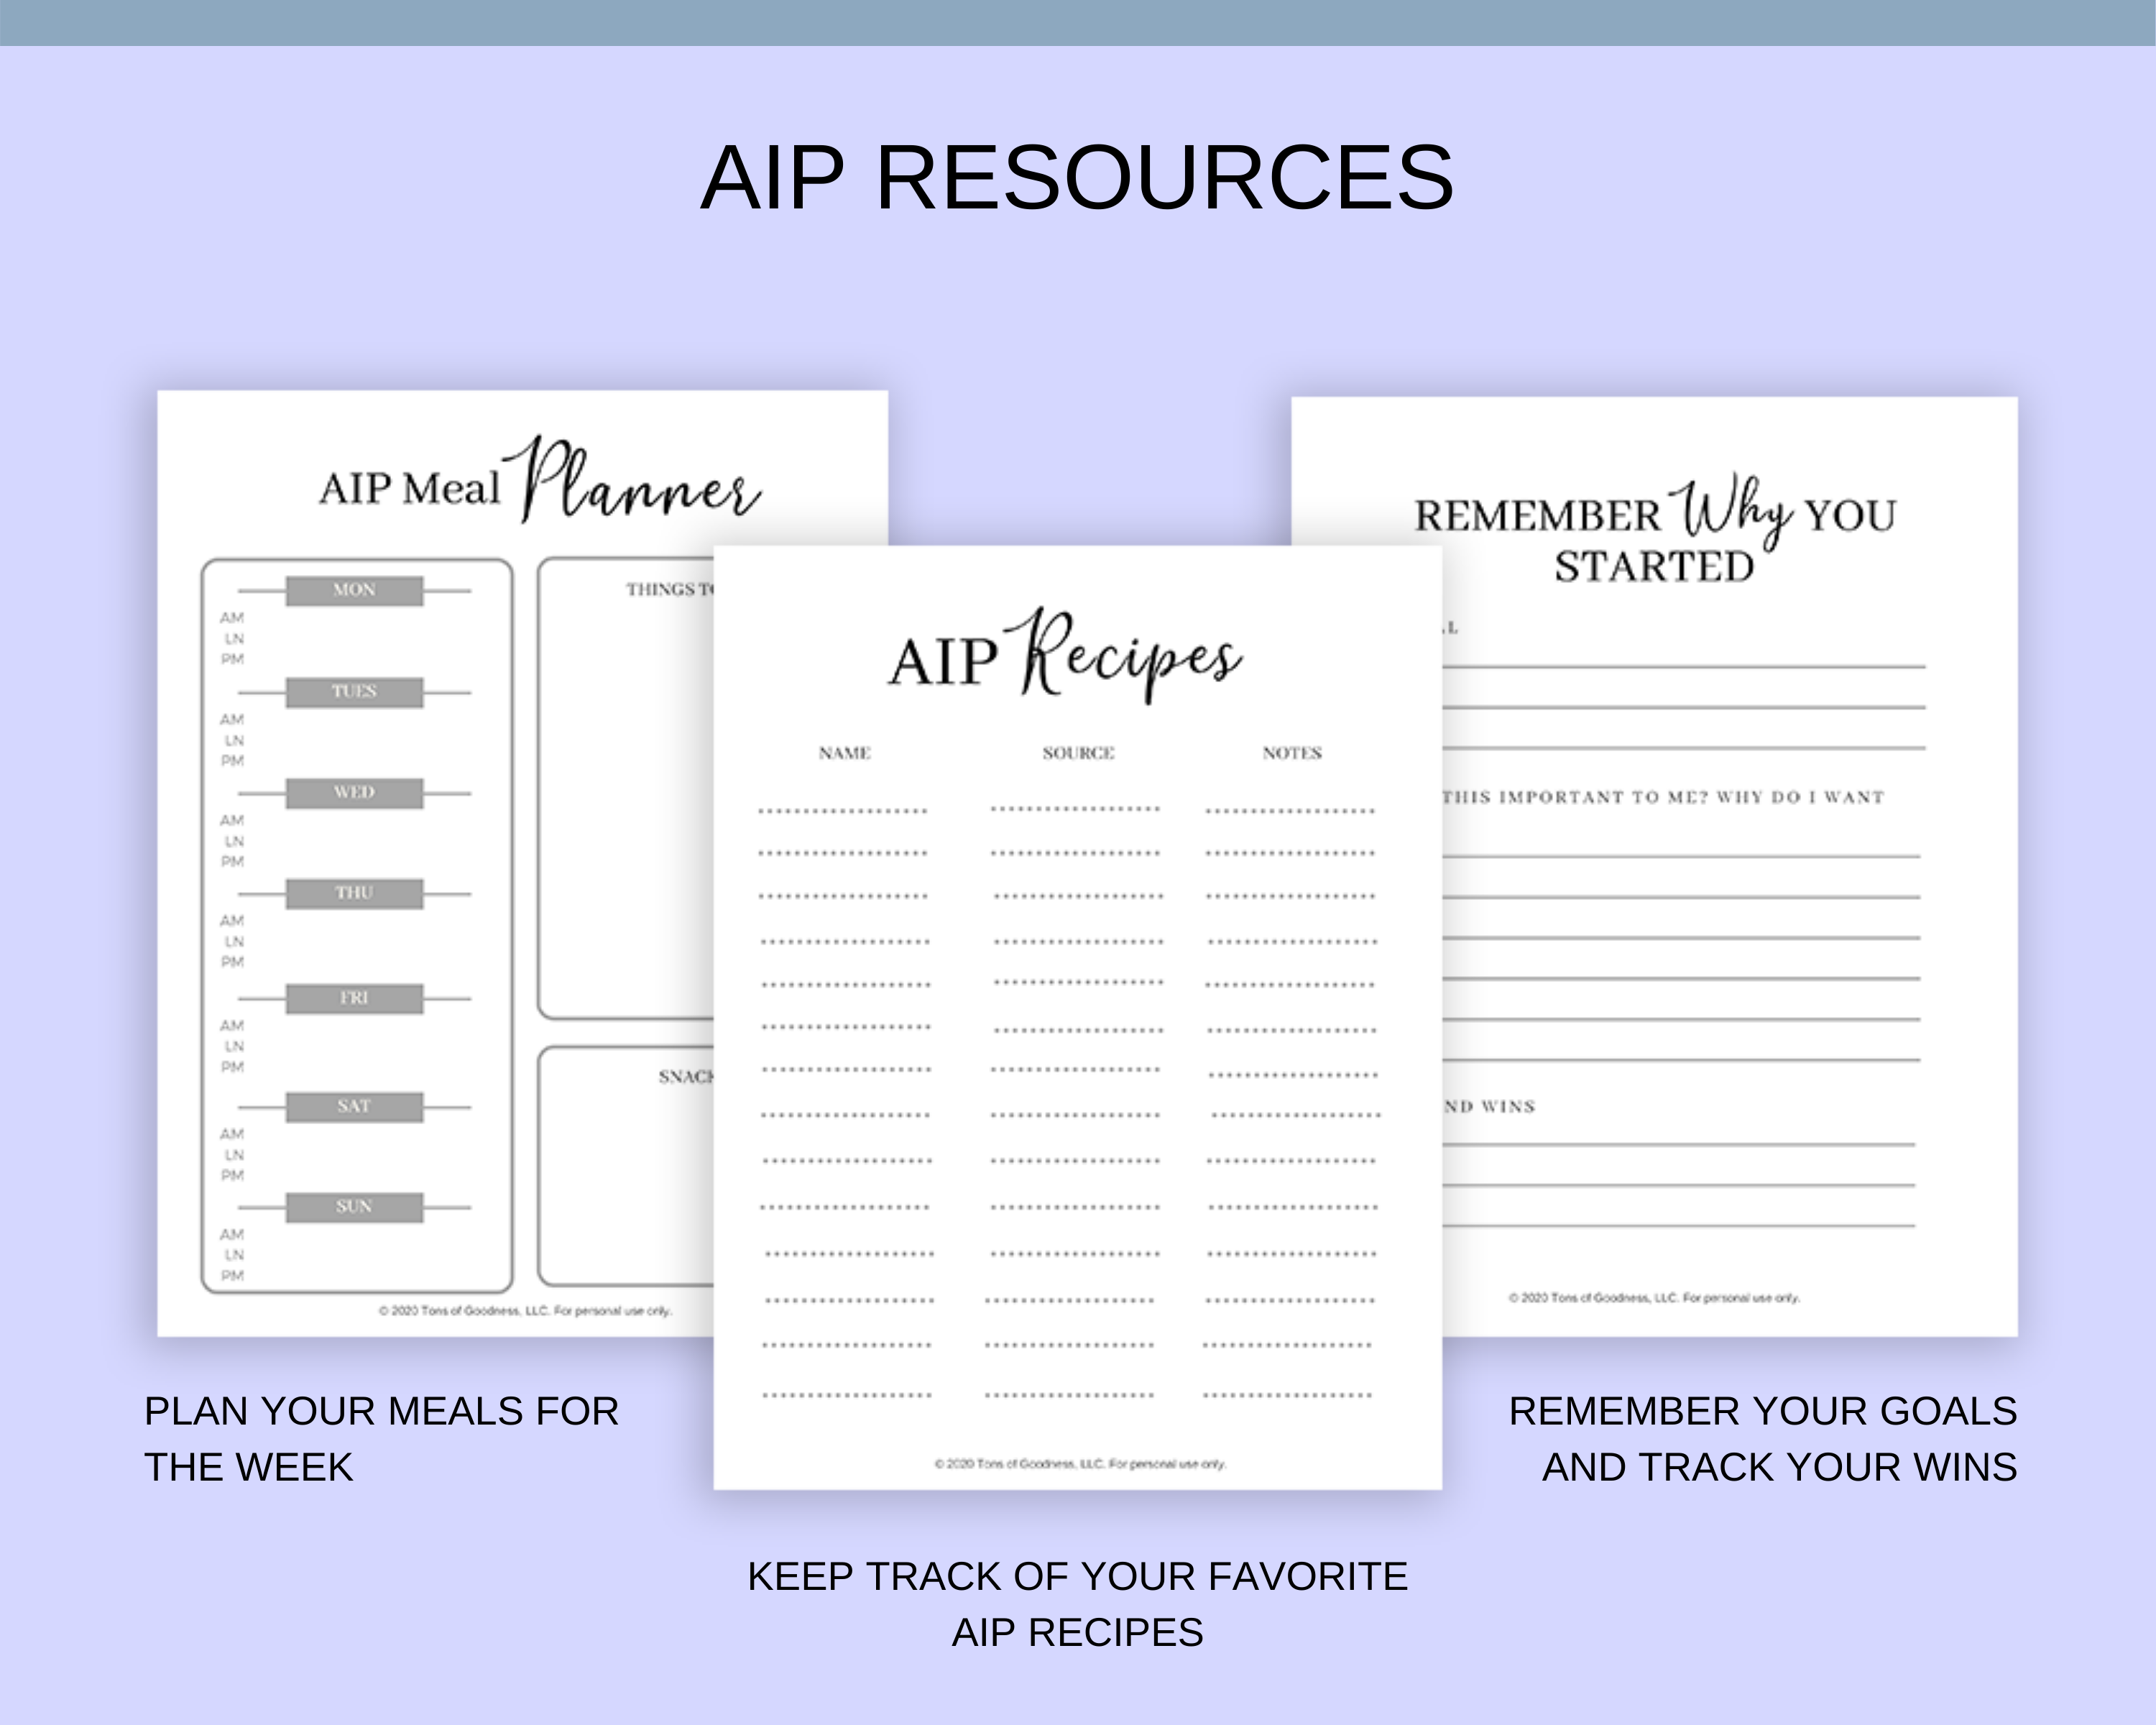 aip RESOURCES